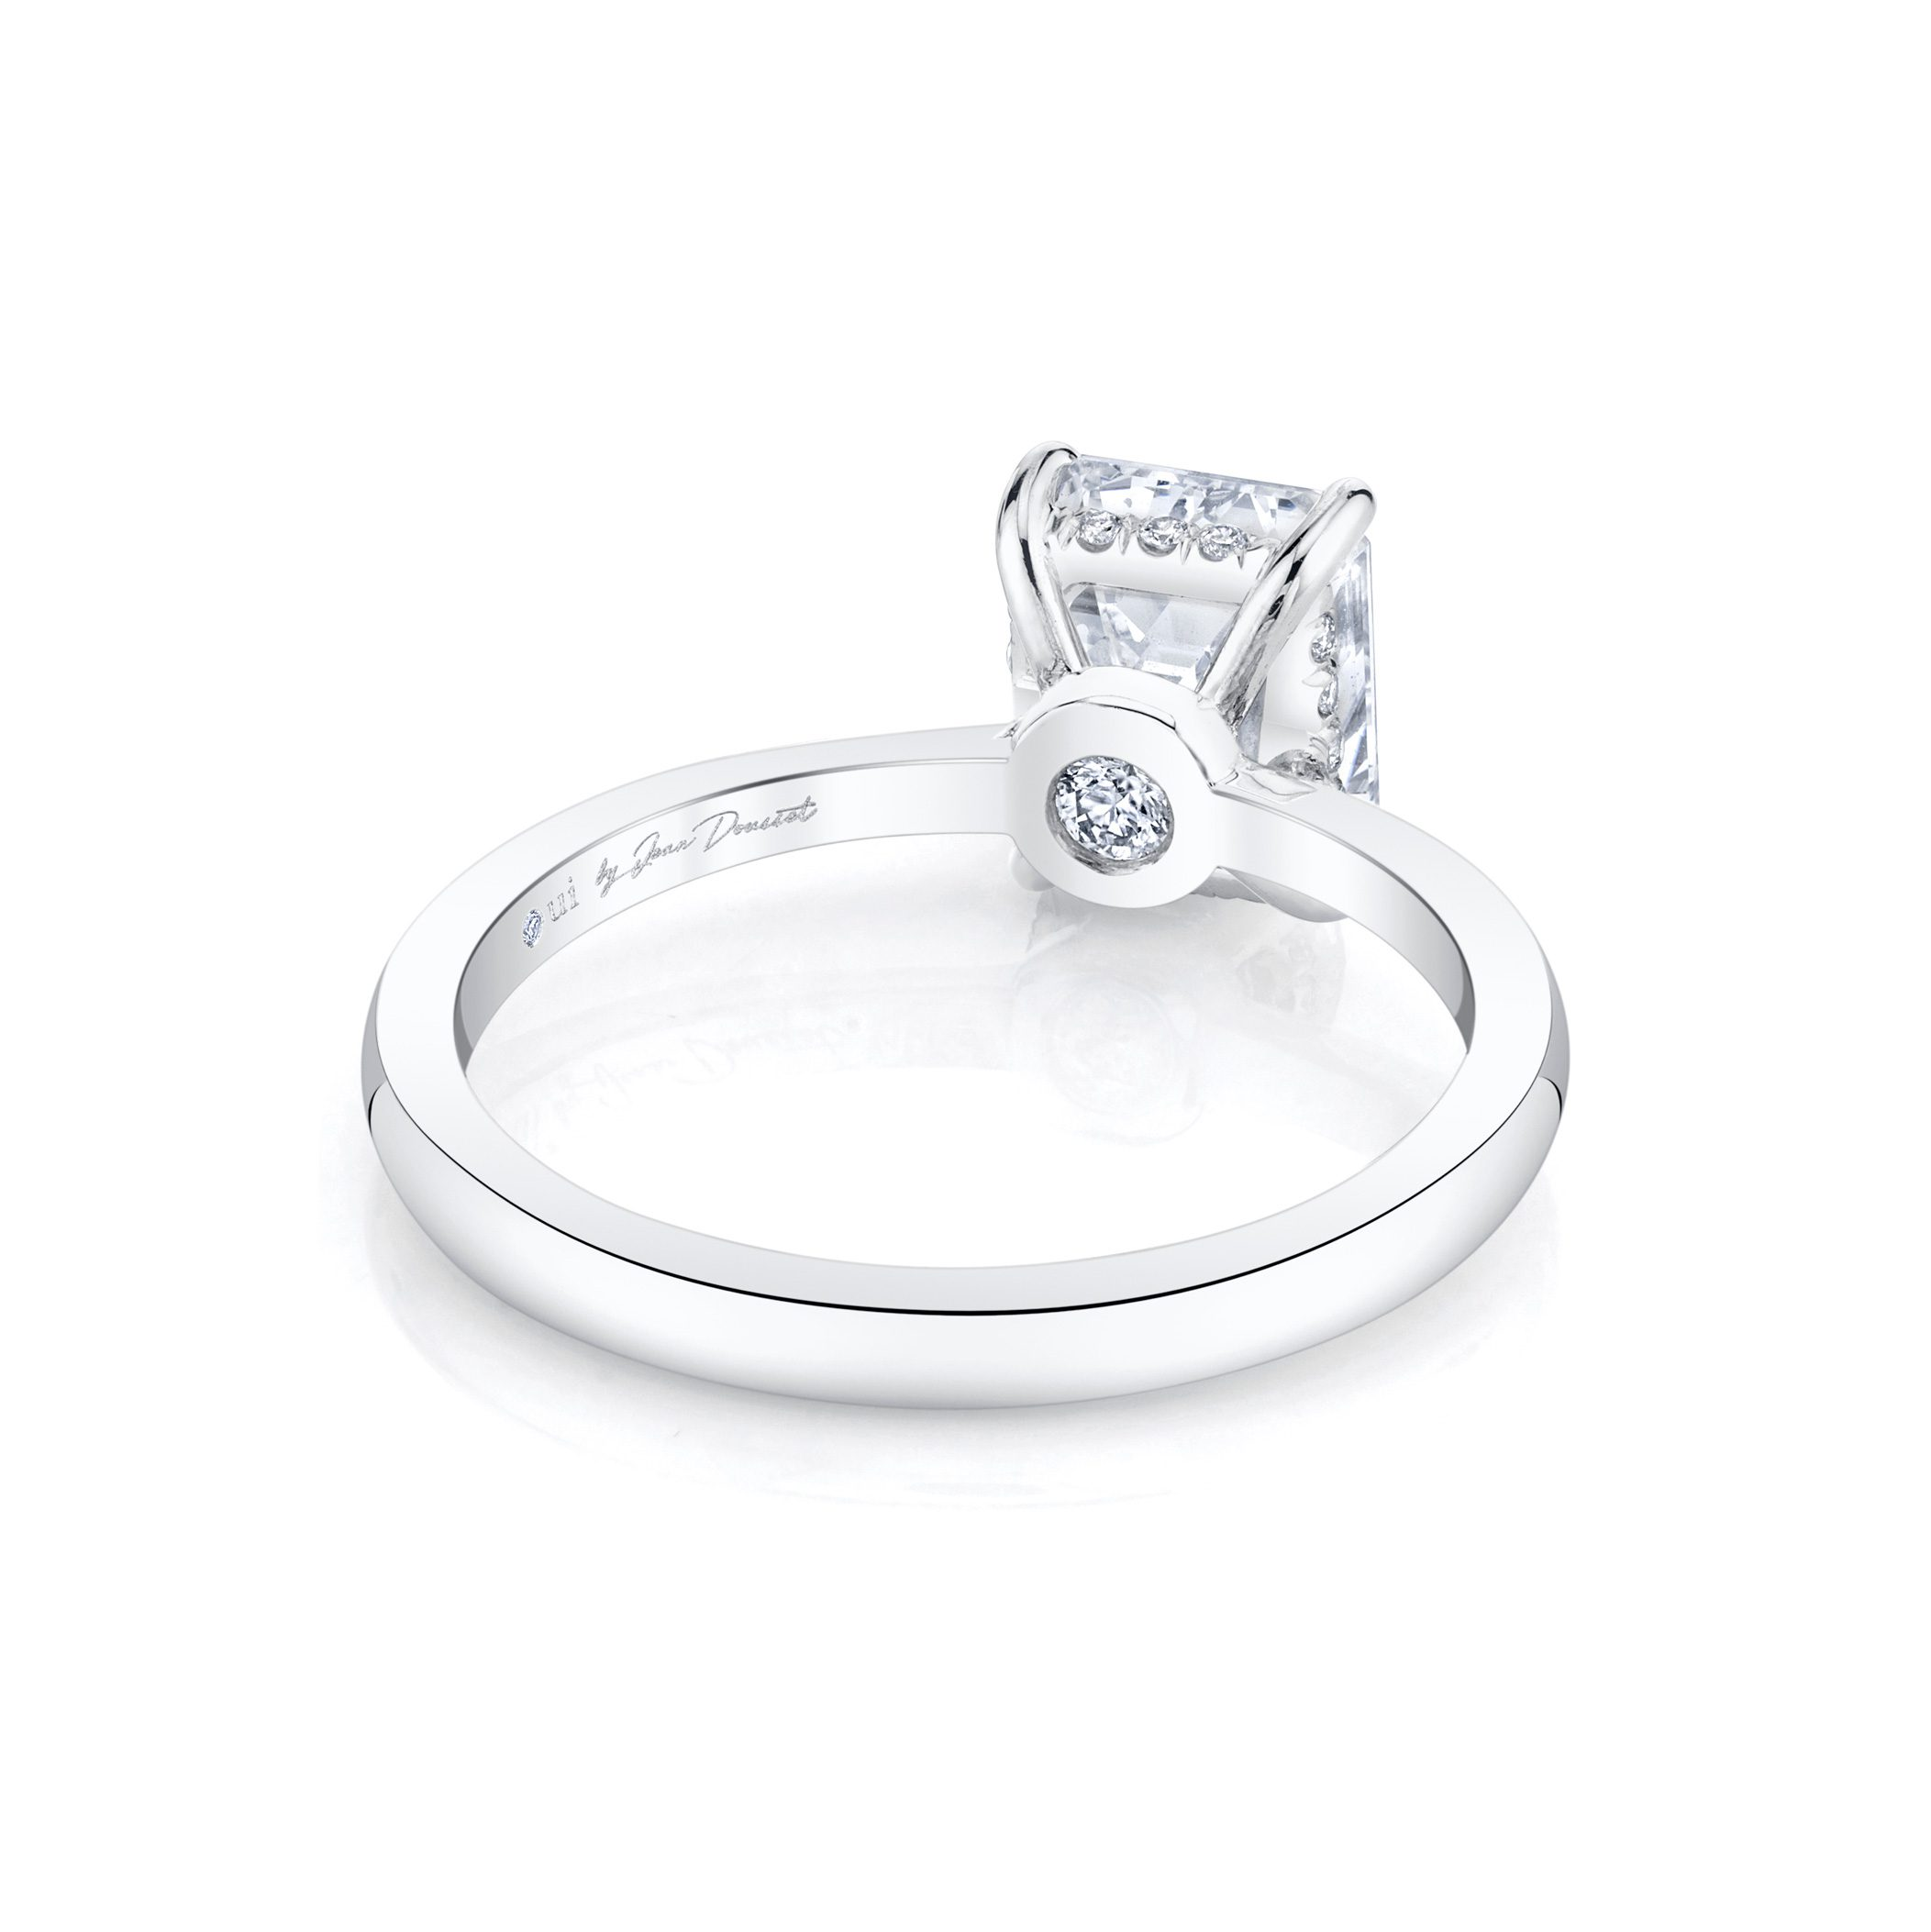 Colette Emerald Solitaire Engagement Ring with a sold band in 18k White Gold Back Shot by Oui by Jean Dousset